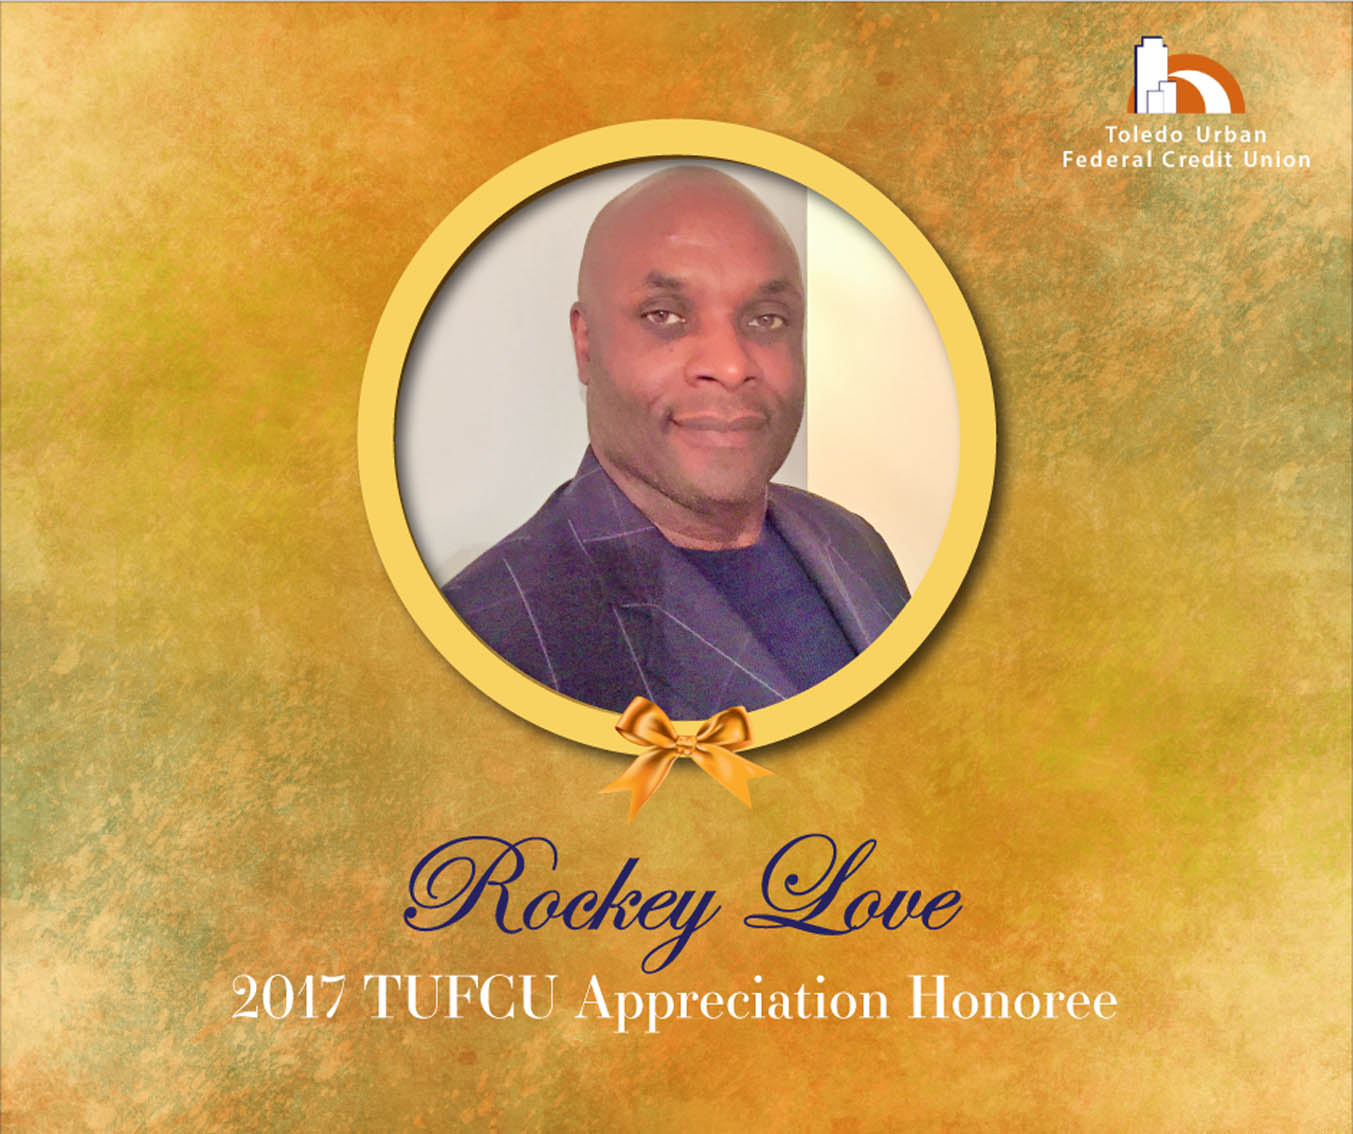 Image of Rockey Love, 2017 T.U.F.C.U. Appreciation Honoree.